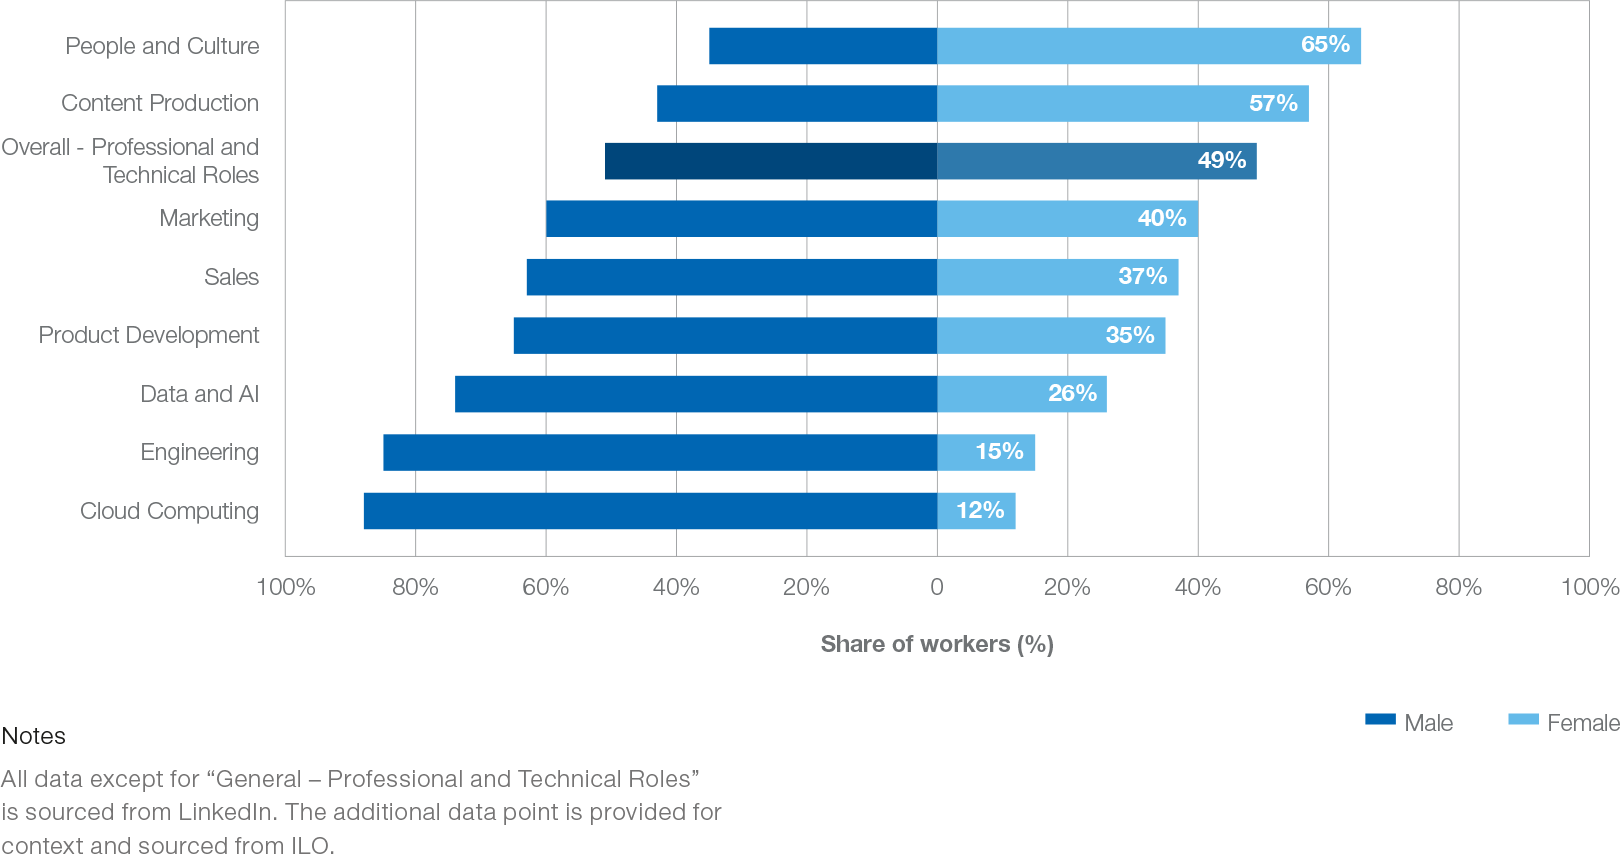 Figure 1: Share of male and female workers across professional clusters